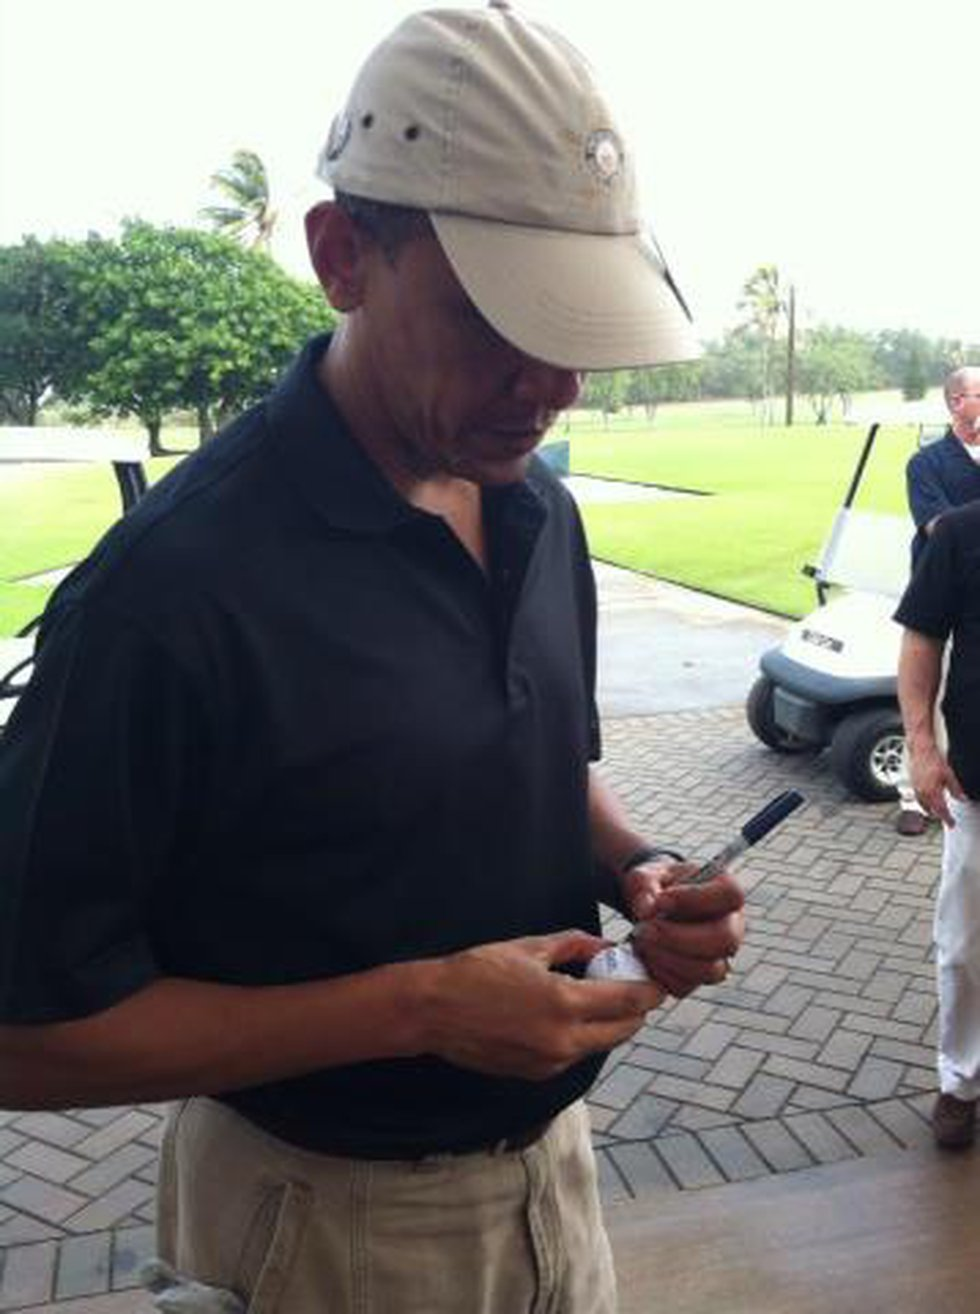 Obama signs autographs at the Kaneohe Marine golf course - Photo: Cindy Willing O'Farrell